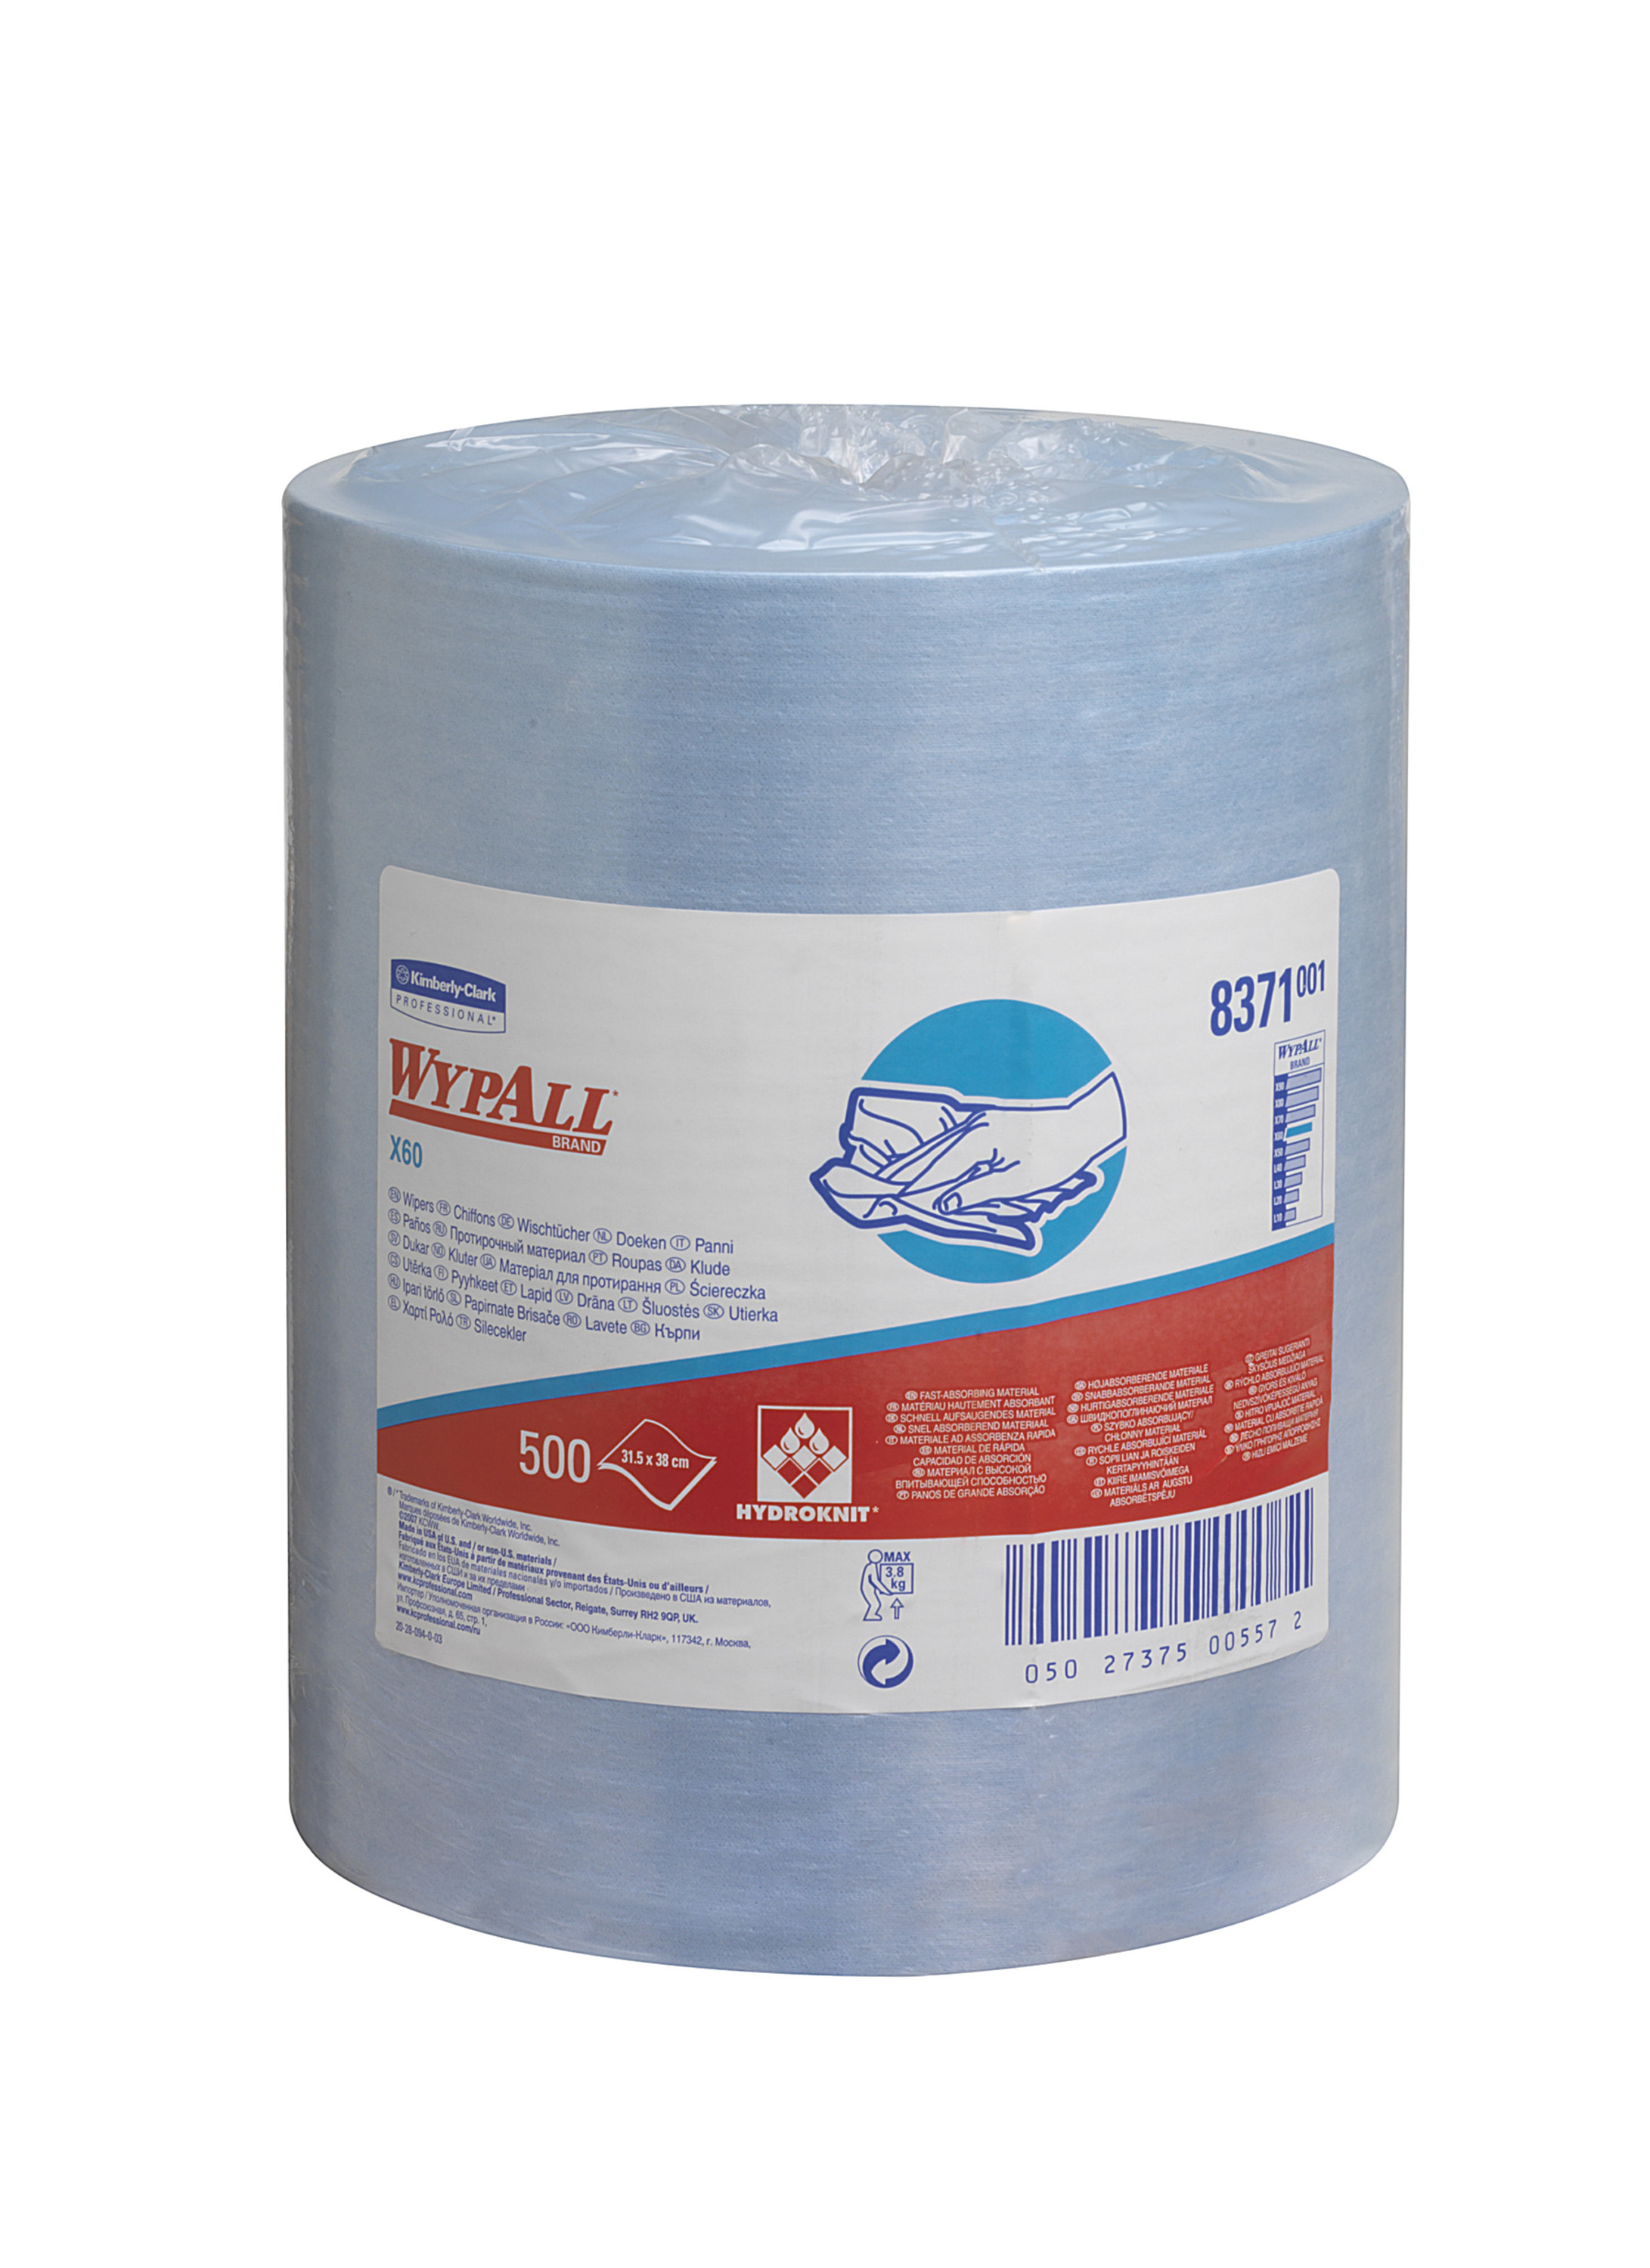 Kimberly Clark Wypall 8371 Blue Towel Roll Of 500 Vip